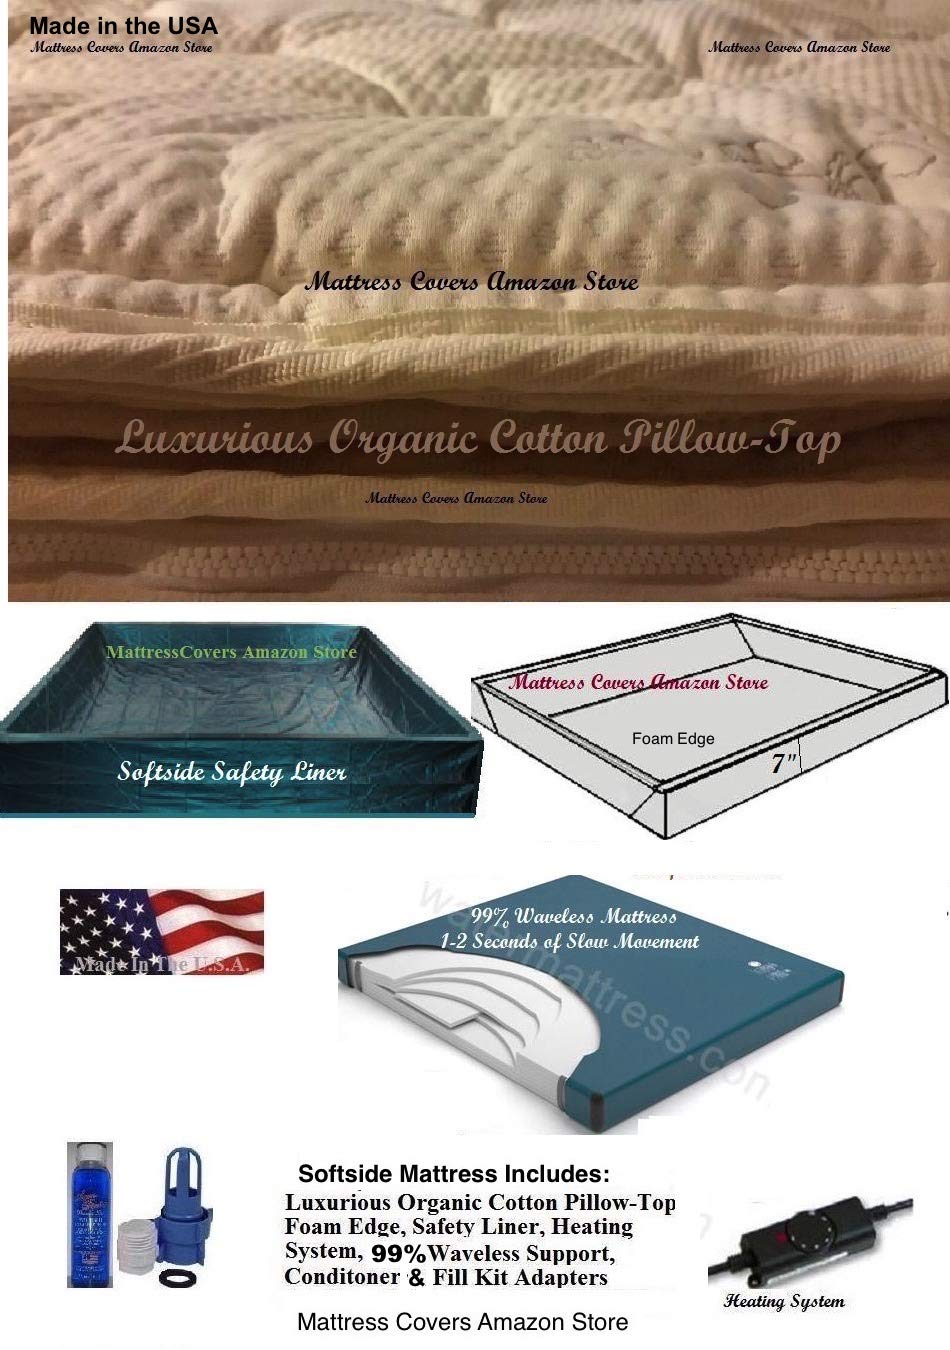 King Softsided Waterbed Mattress with Cotton Pillowtop & 99 Percent Waveless Support by United States Water Mattress